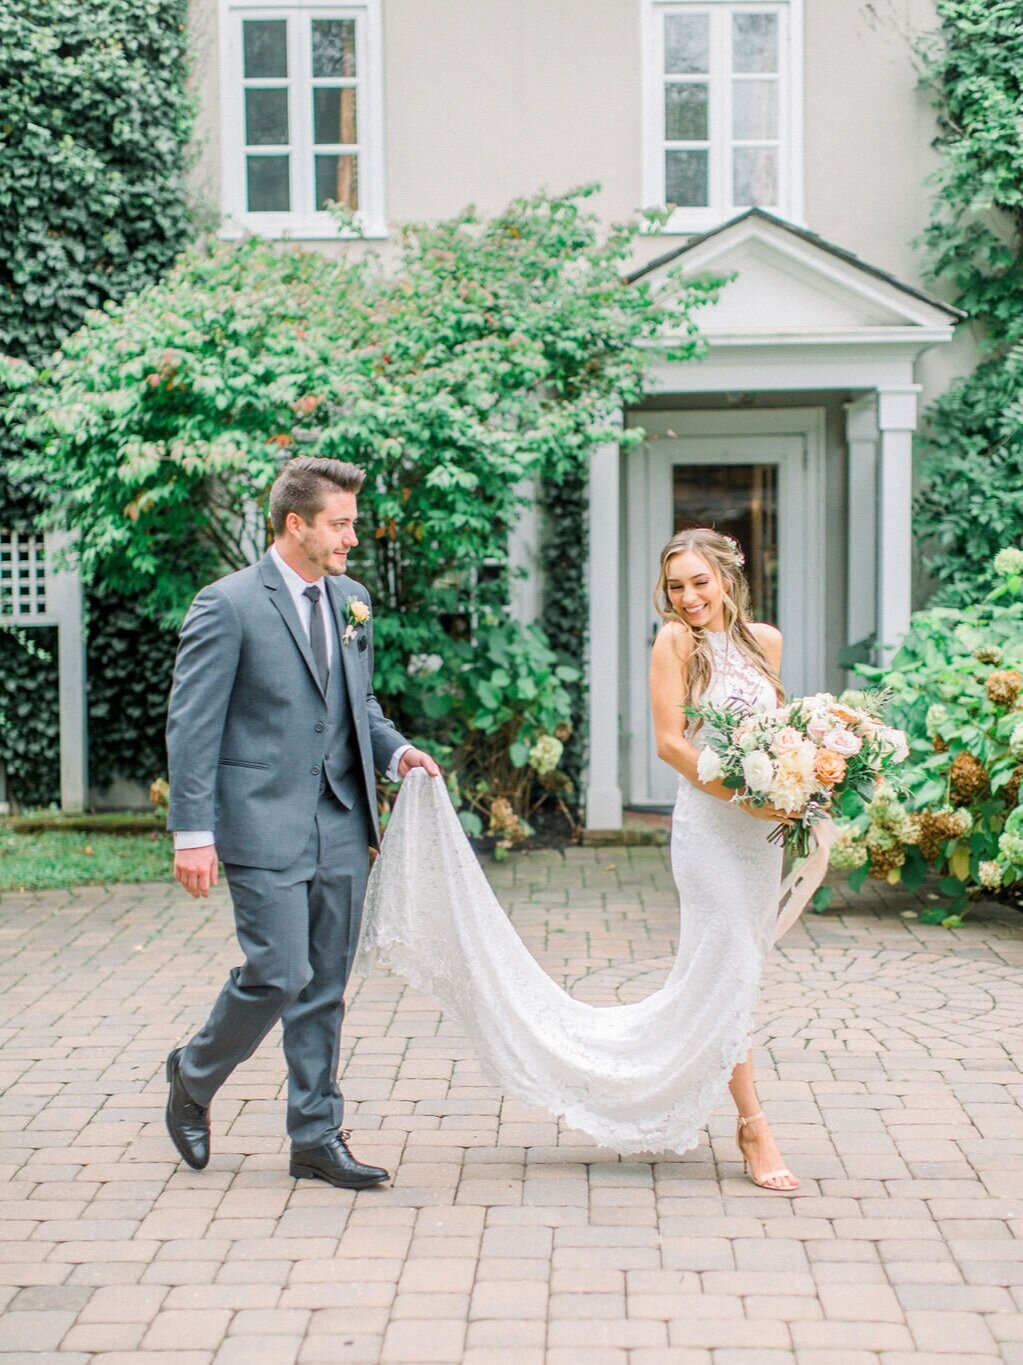 We Make Your Life Easier - A few of the ways that we make your time planning your wedding easier as you work with us on your floral designs: No Required Minimum Budgets, A La Carte Services, and Personalized Payment Plans